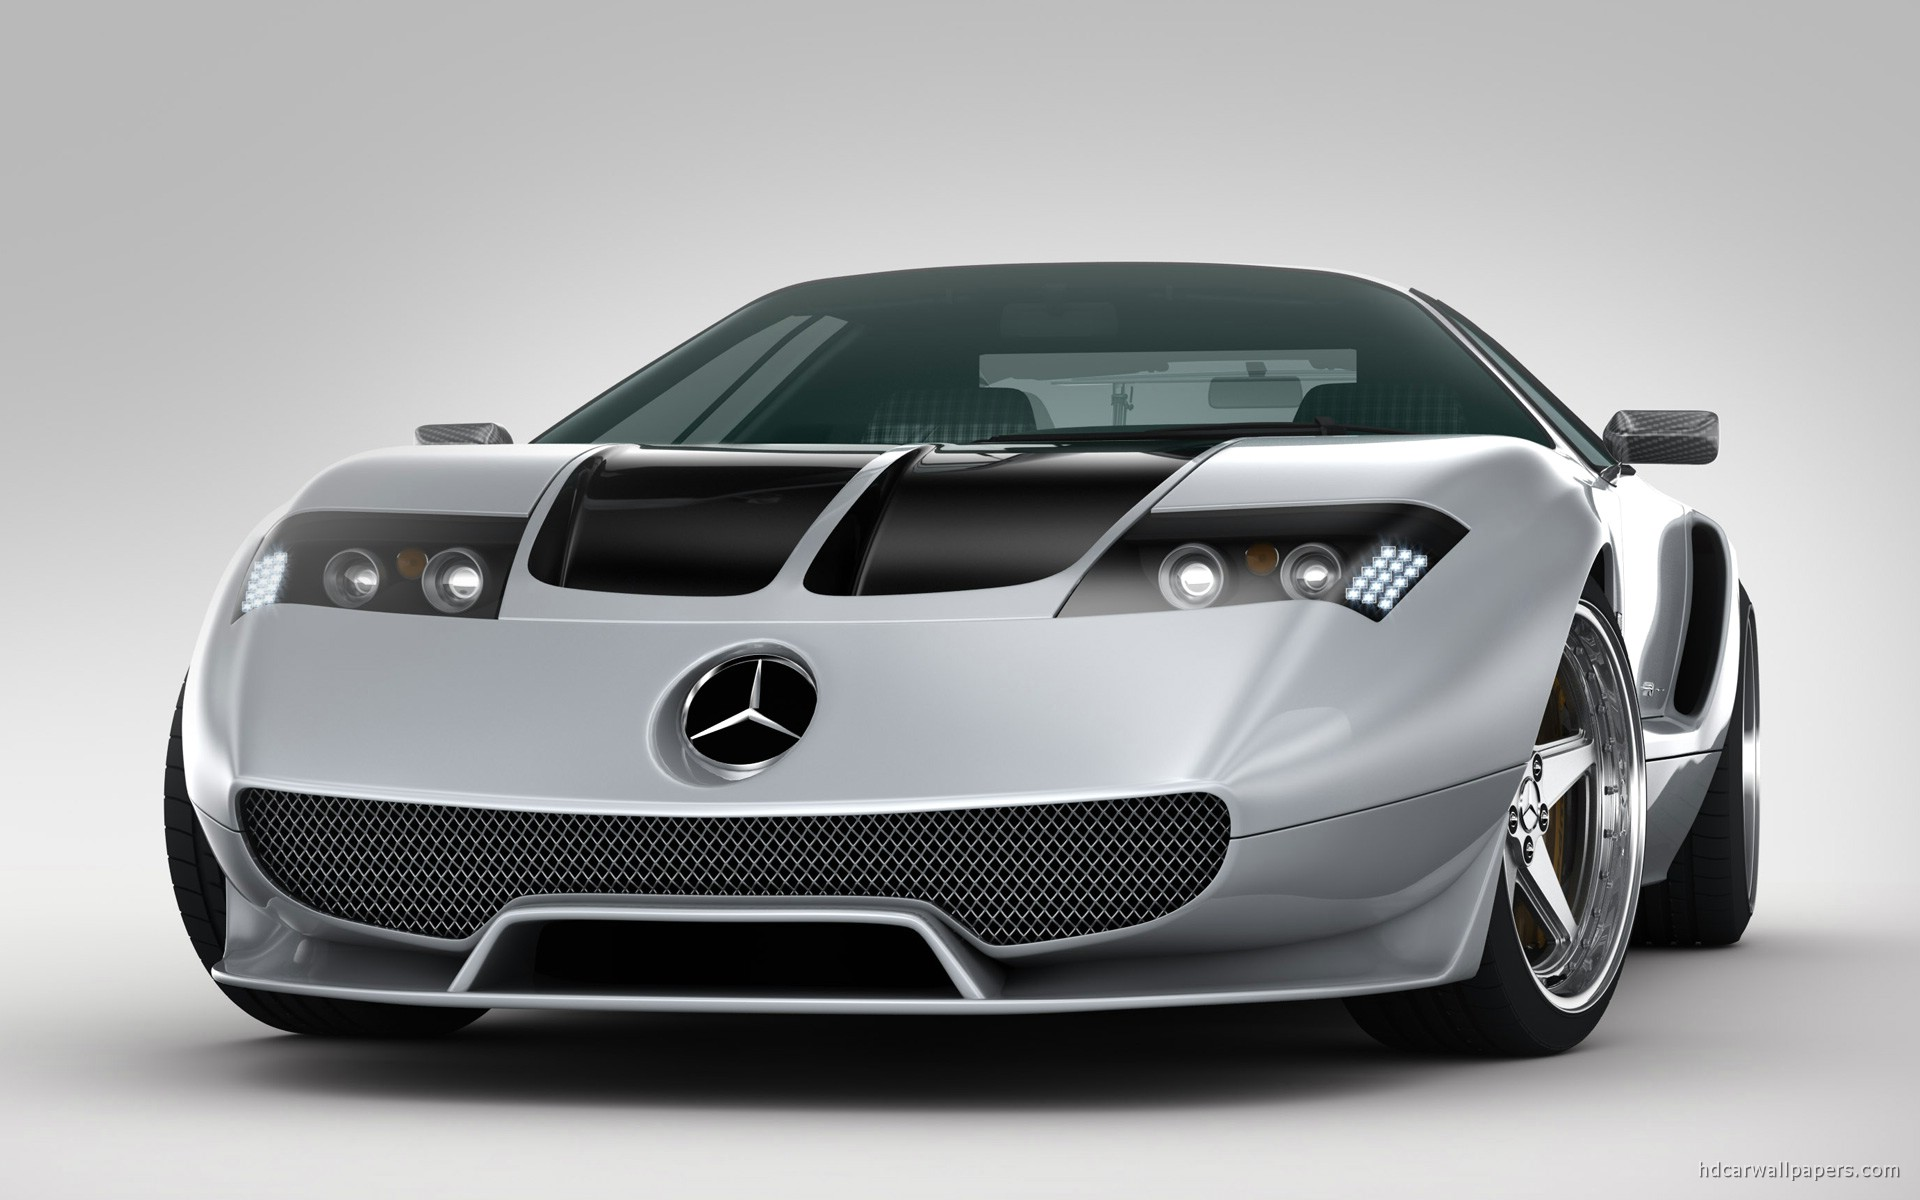 Gwa mercedes benz ciento once wallpaper hd car wallpapers for Cars of mercedes benz